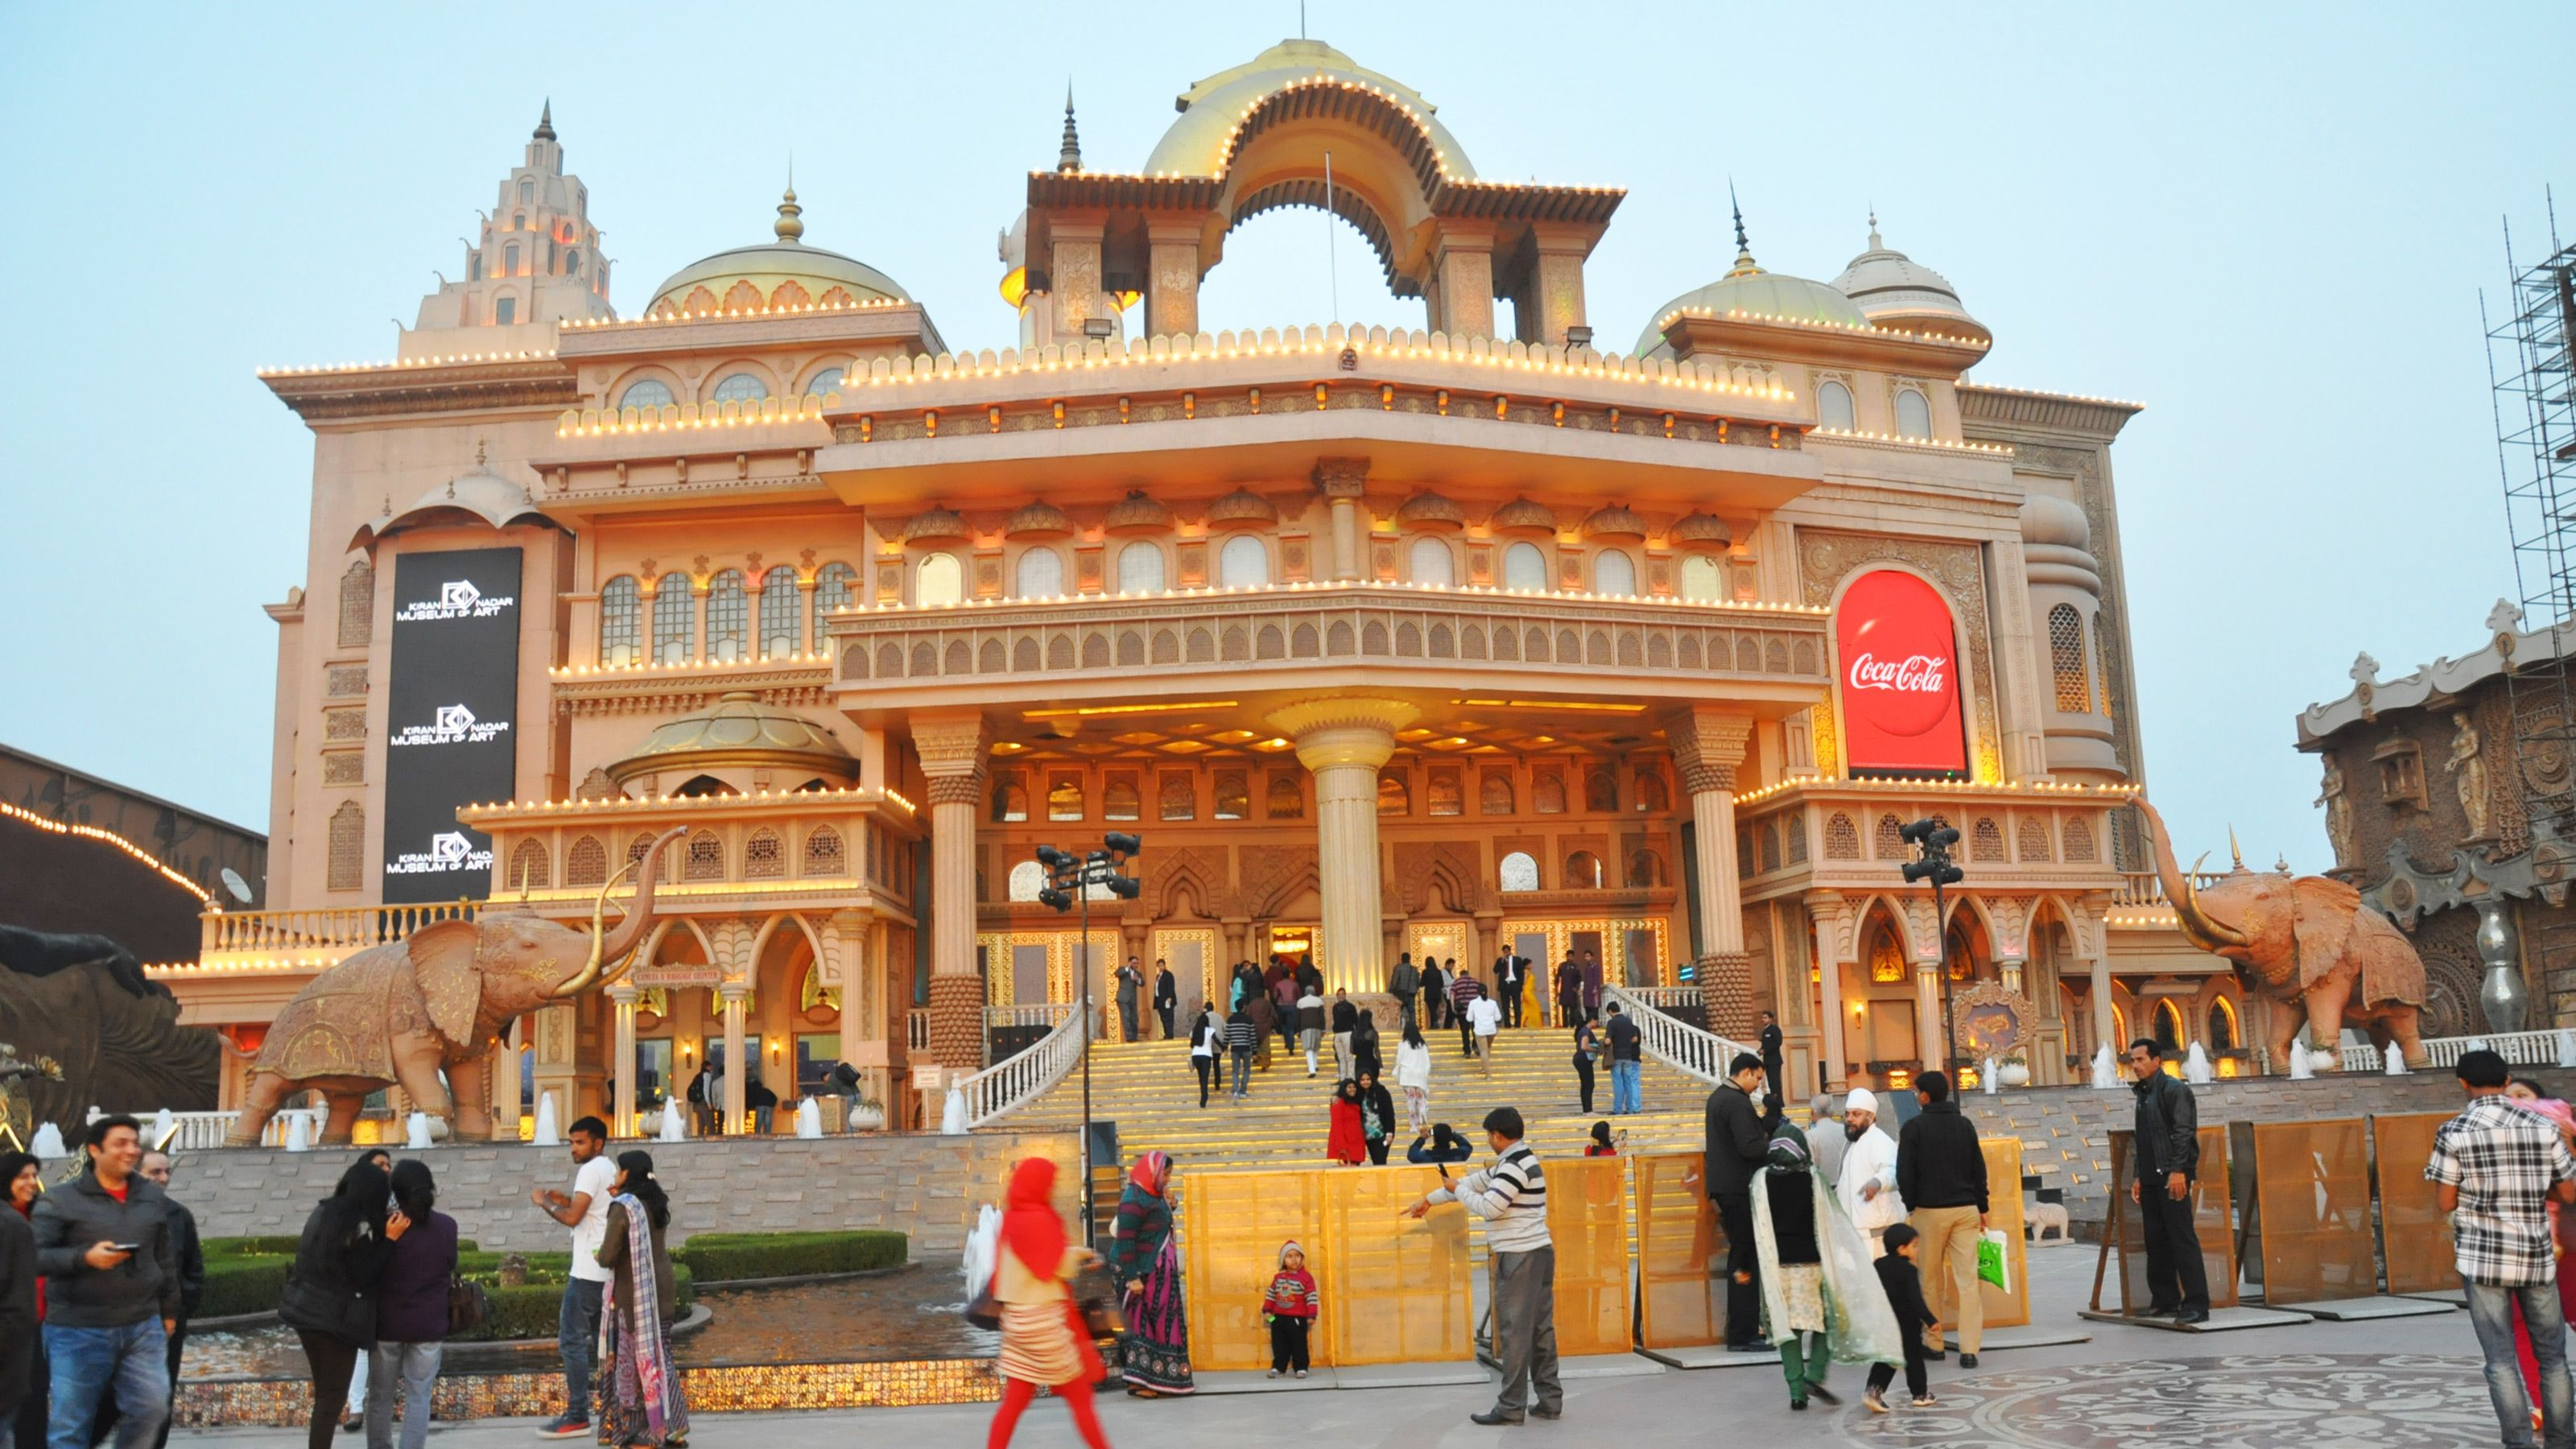 Live Show at the Kingdom of Dreams